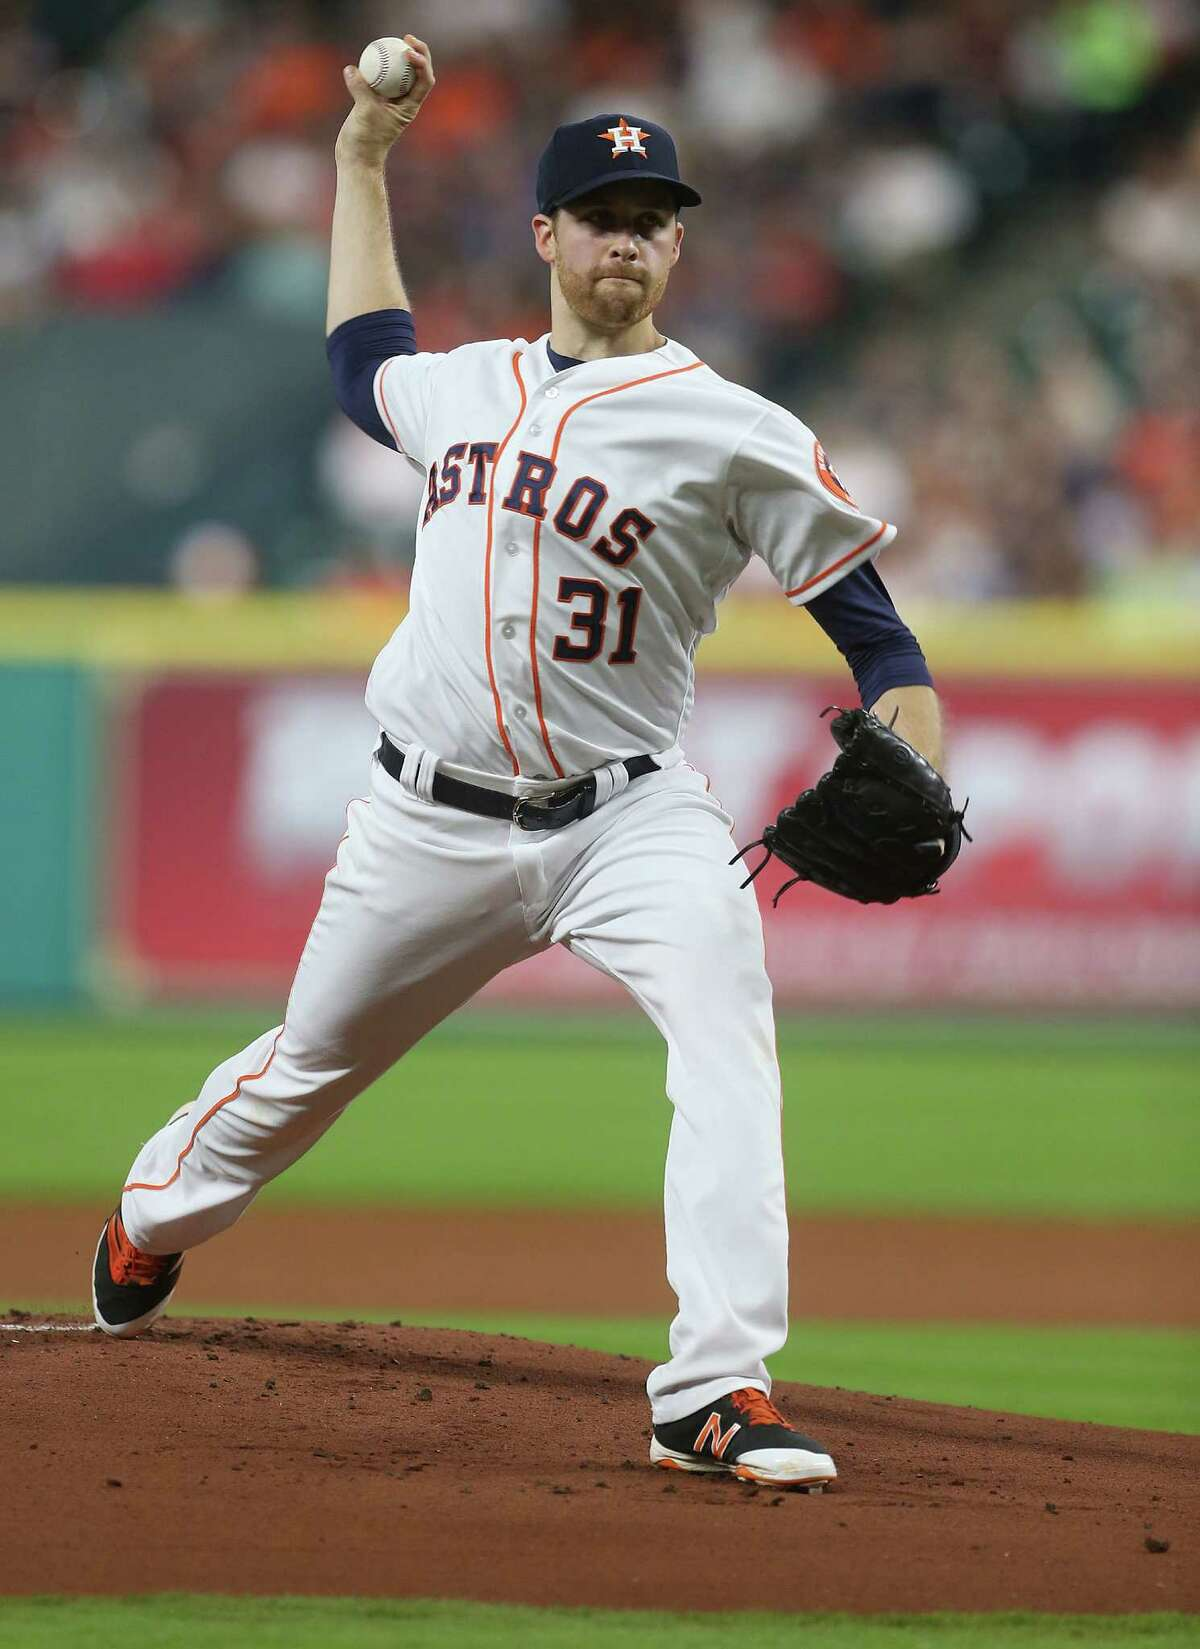 Houston Astros starting pitcher Collin McHugh (31) pitches in the first inning against the Detroit Tigers second baseman Ian Kinsler (3). Photos of second game in a three-game series between Houston Astros and Detroit Tigers on Saturday, April 16, 2016, in Houston. Astros lead the series 1-0.